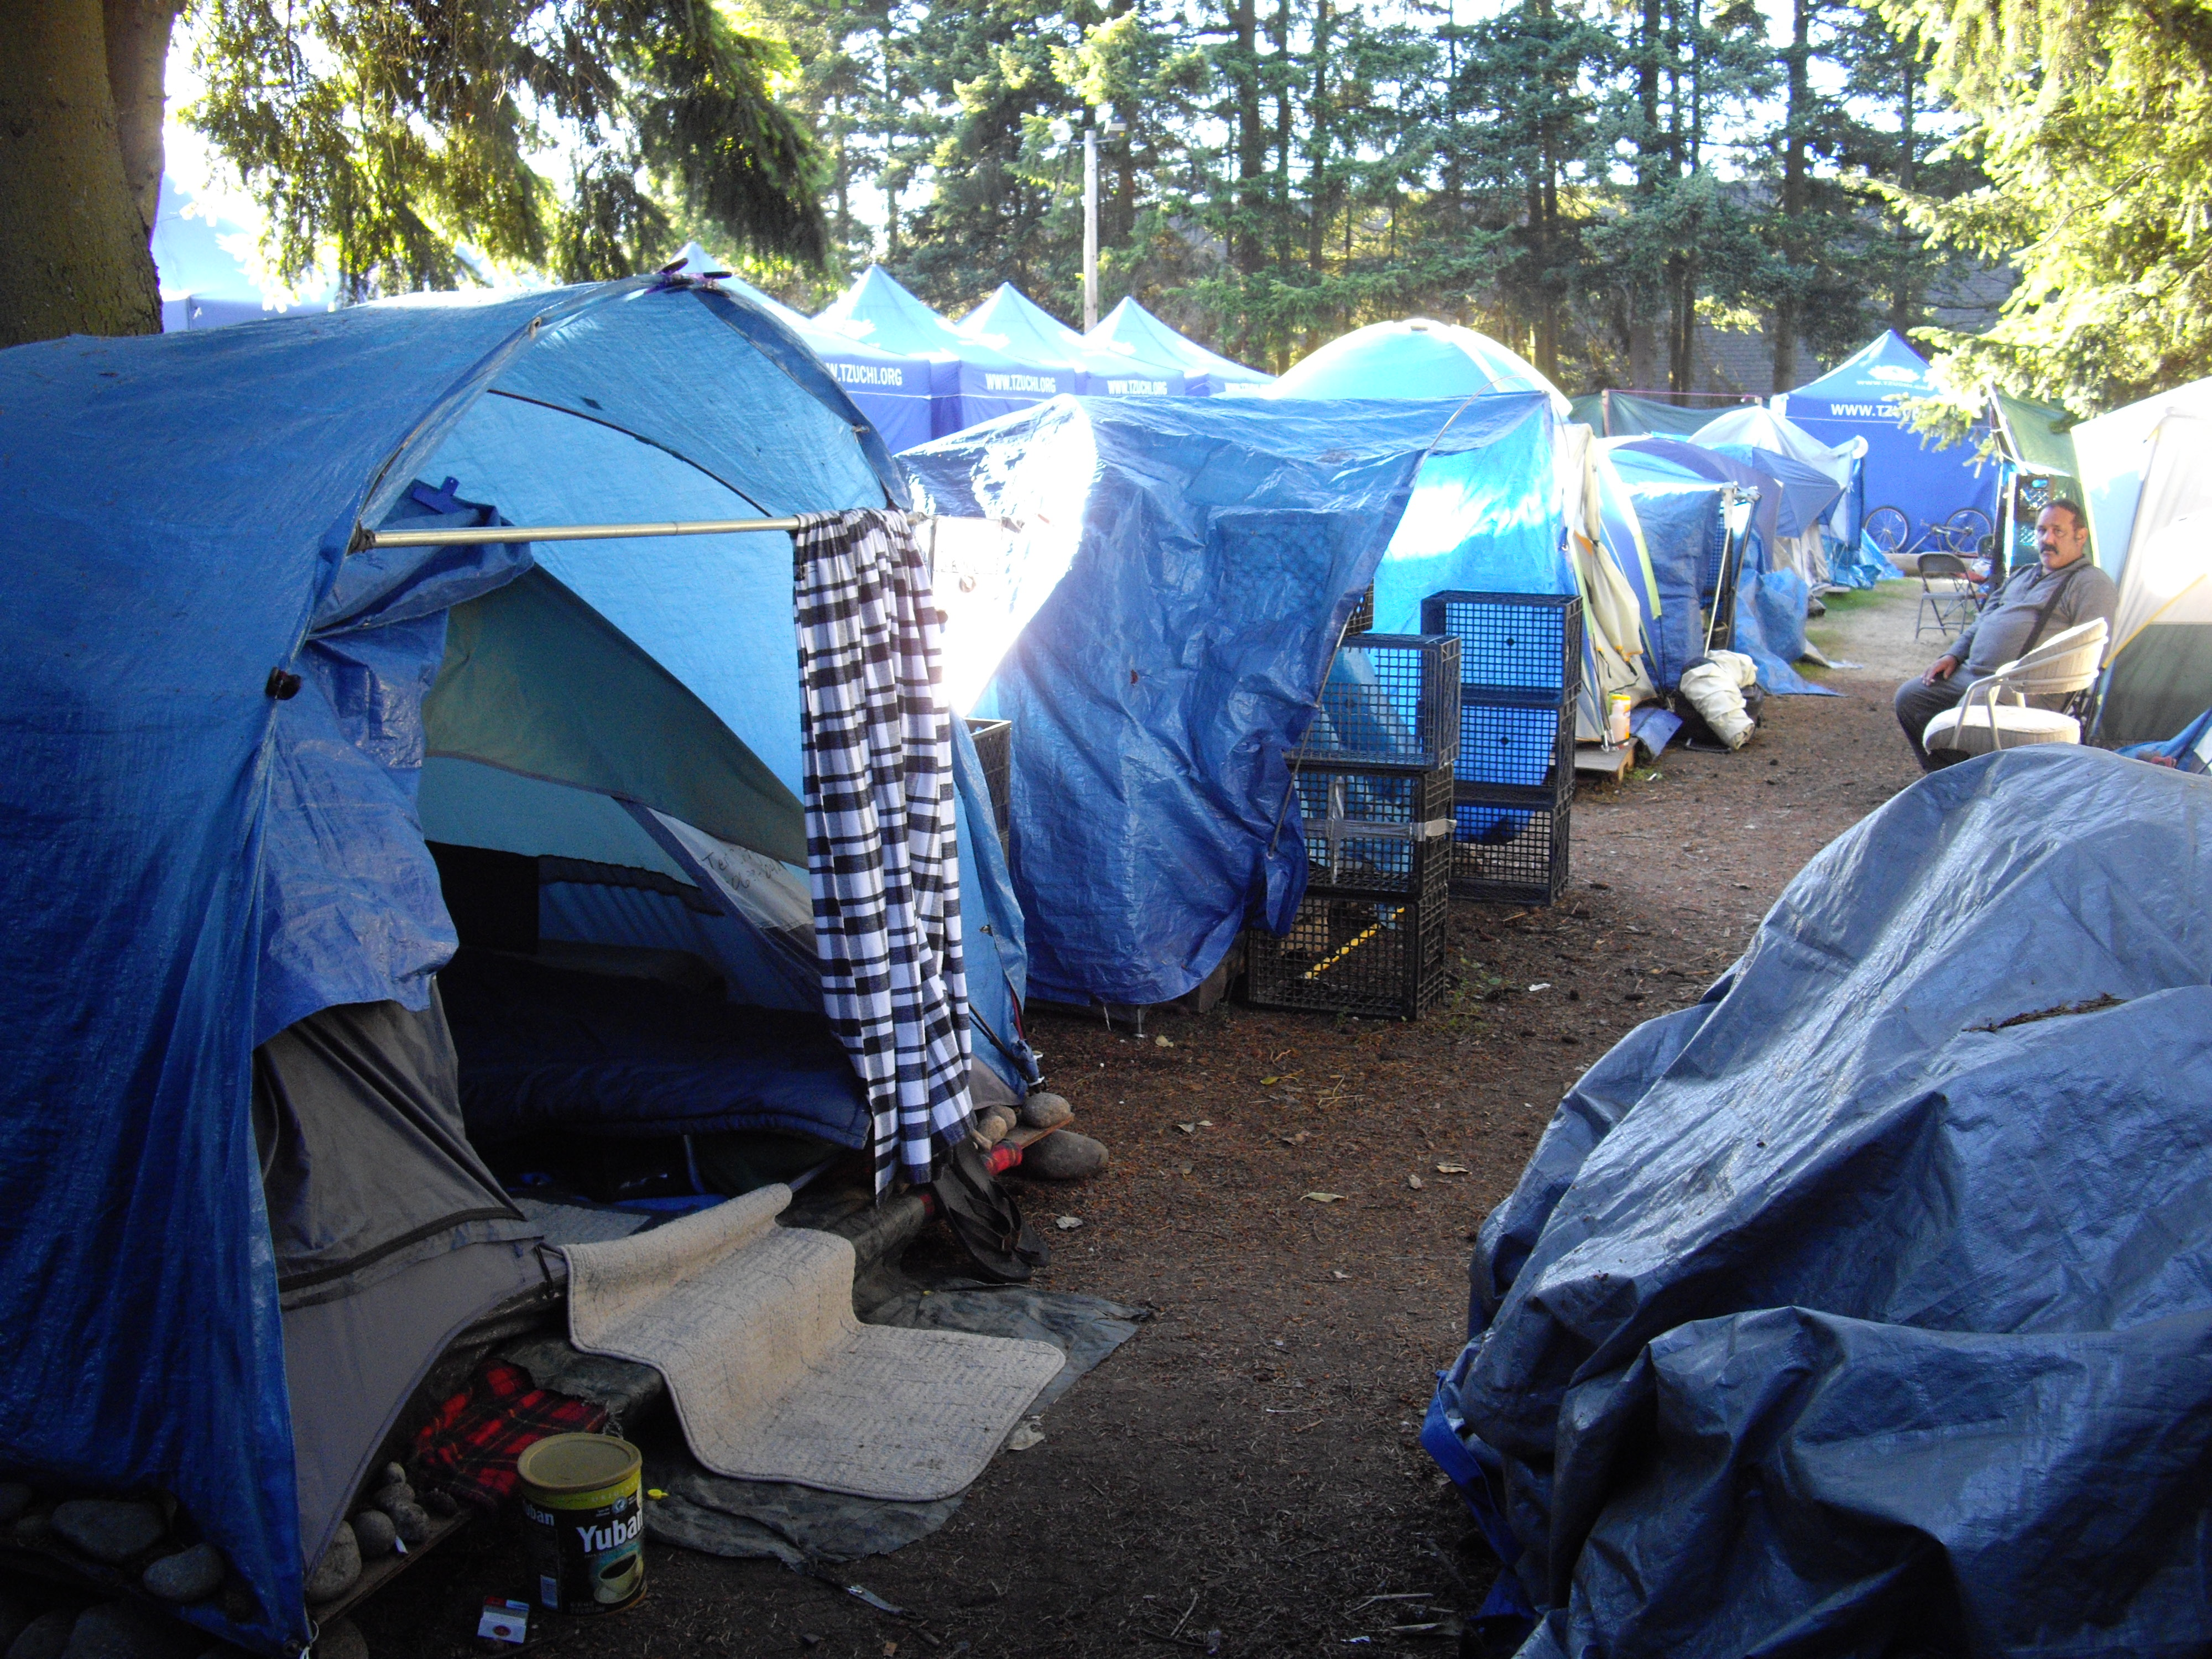 Tents line the hillside above Calvin Presbyterian Church in Shoreline & PRX » Piece » Tent City